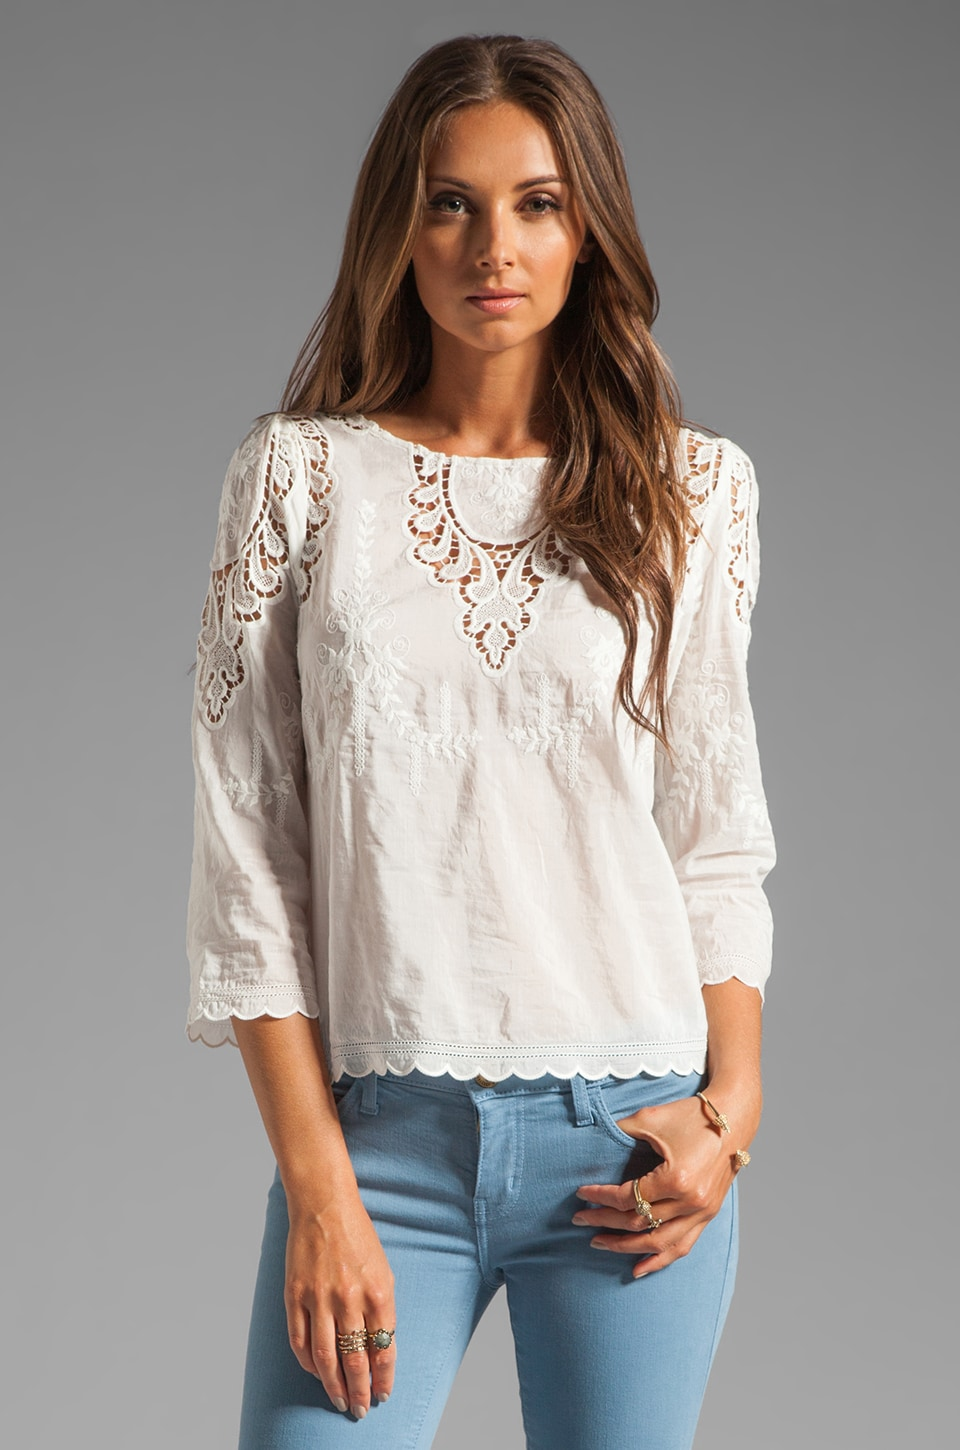 Dolce Vita Alma Top in White